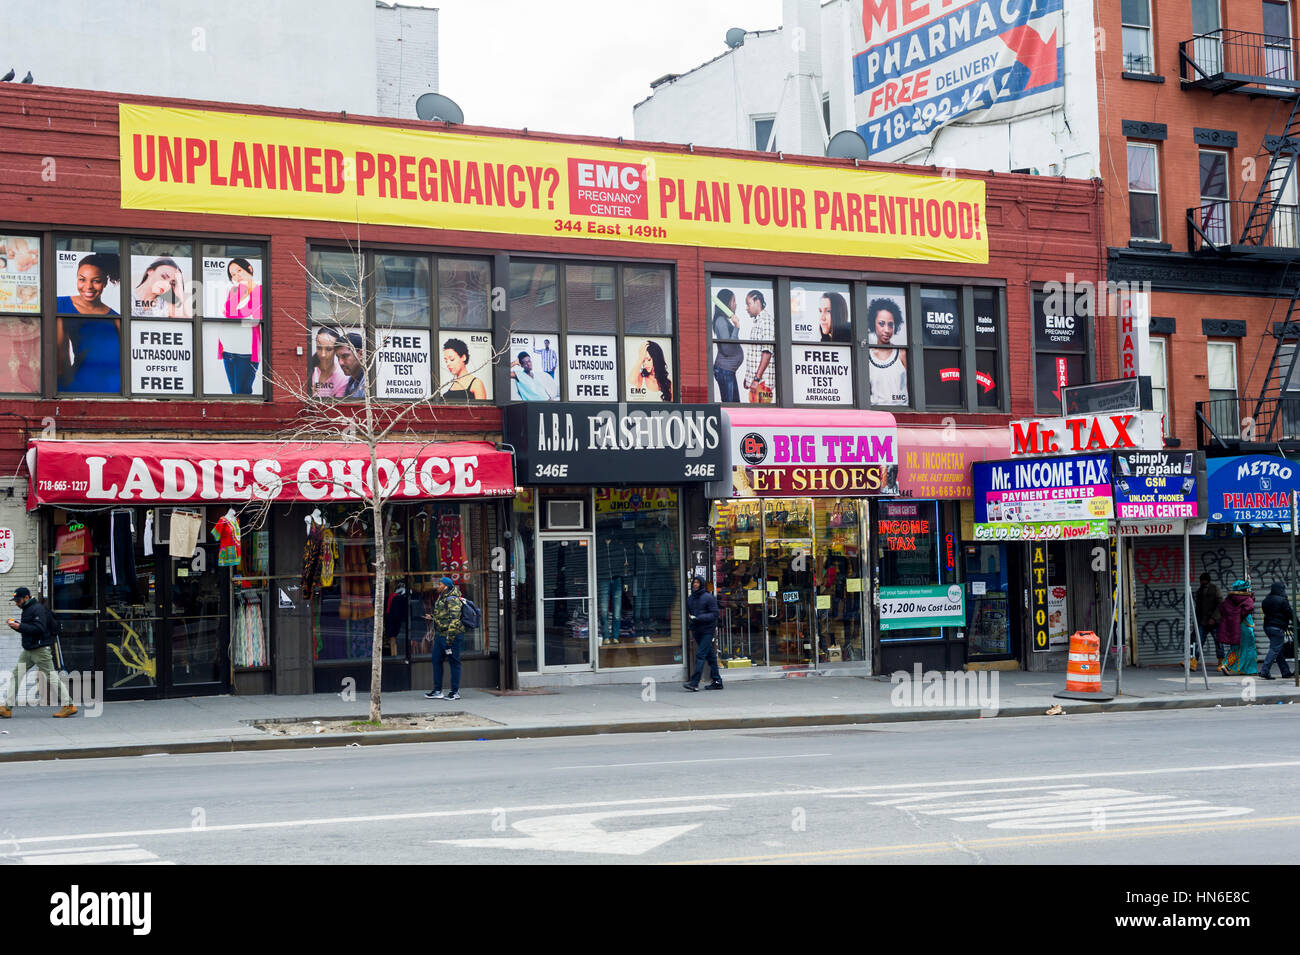 An EMC Frontline Pregnancy Center (Expectant Mother Care) above other businesses in the the Hub, in the Melrose - Stock Image